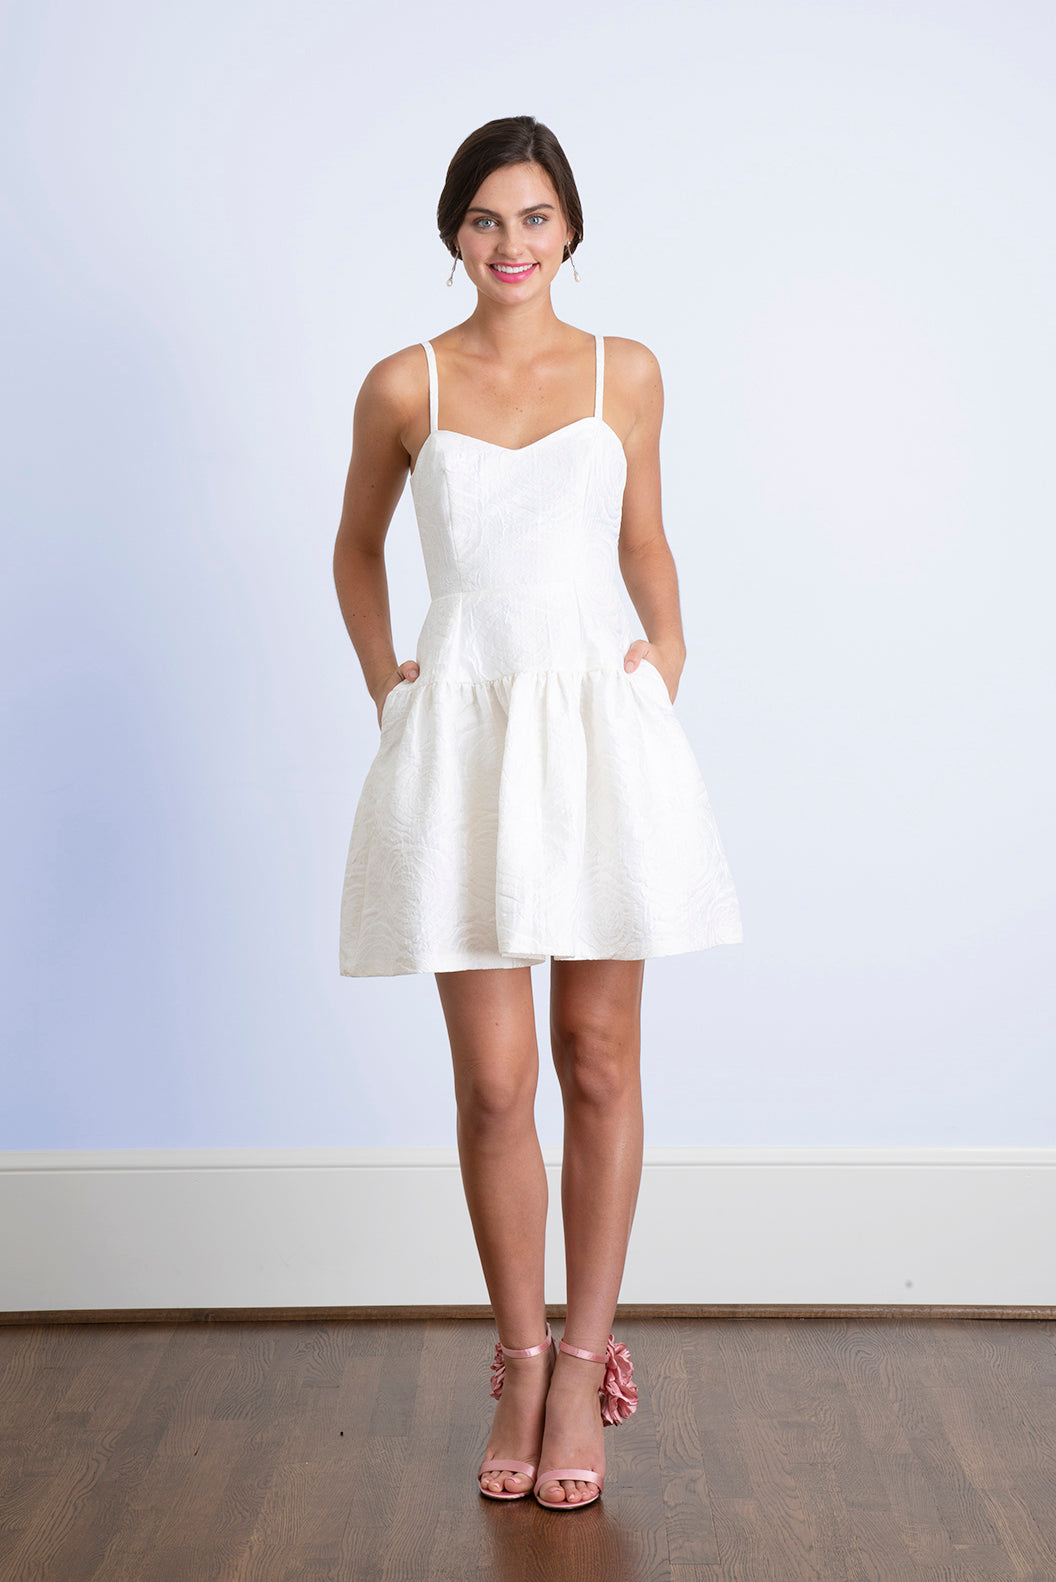 Emery Short White City Hall Courthouse Civil Ceremony Wedding Dress Jane Summers Find short cocktail dresses, long, and more to look like a fashionista at your formal event! usd